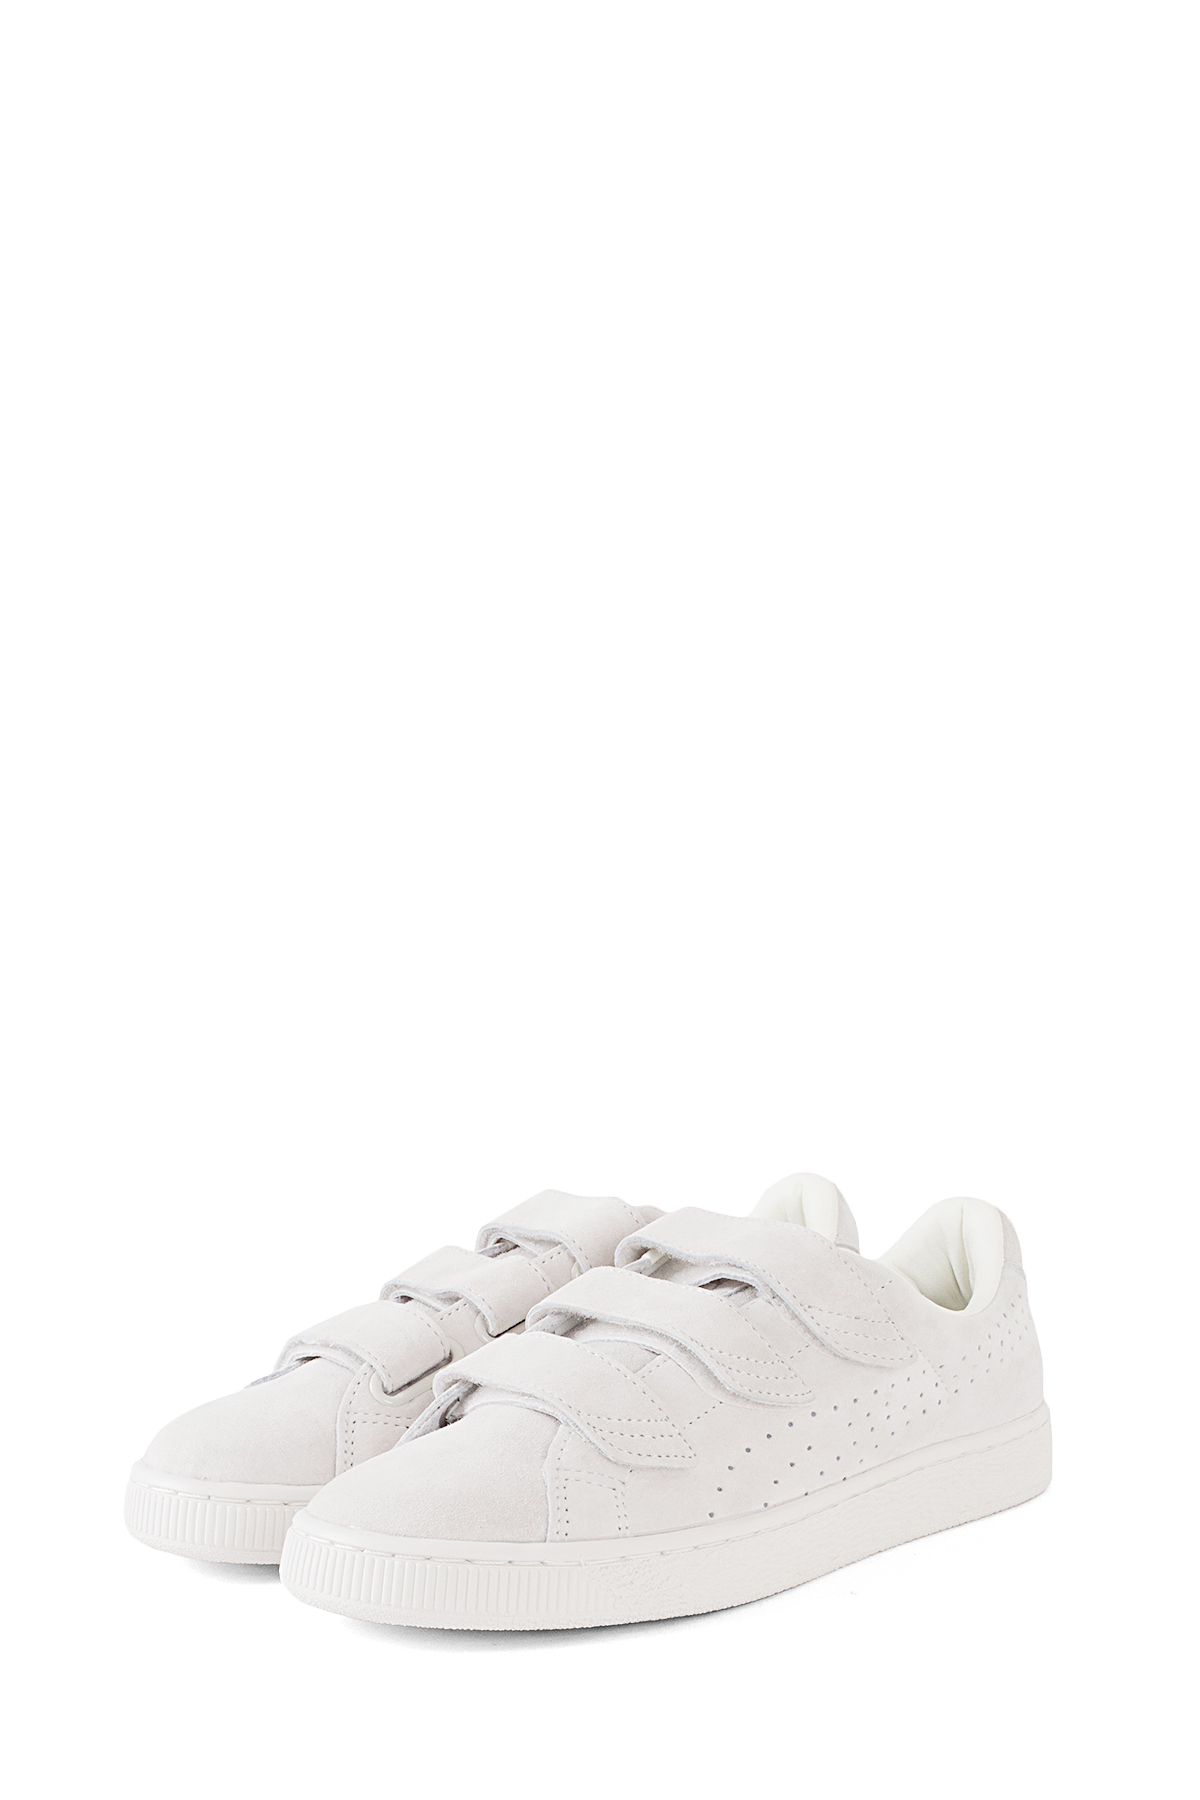 PUMA : Basket Strap Soft Premium Star (White)